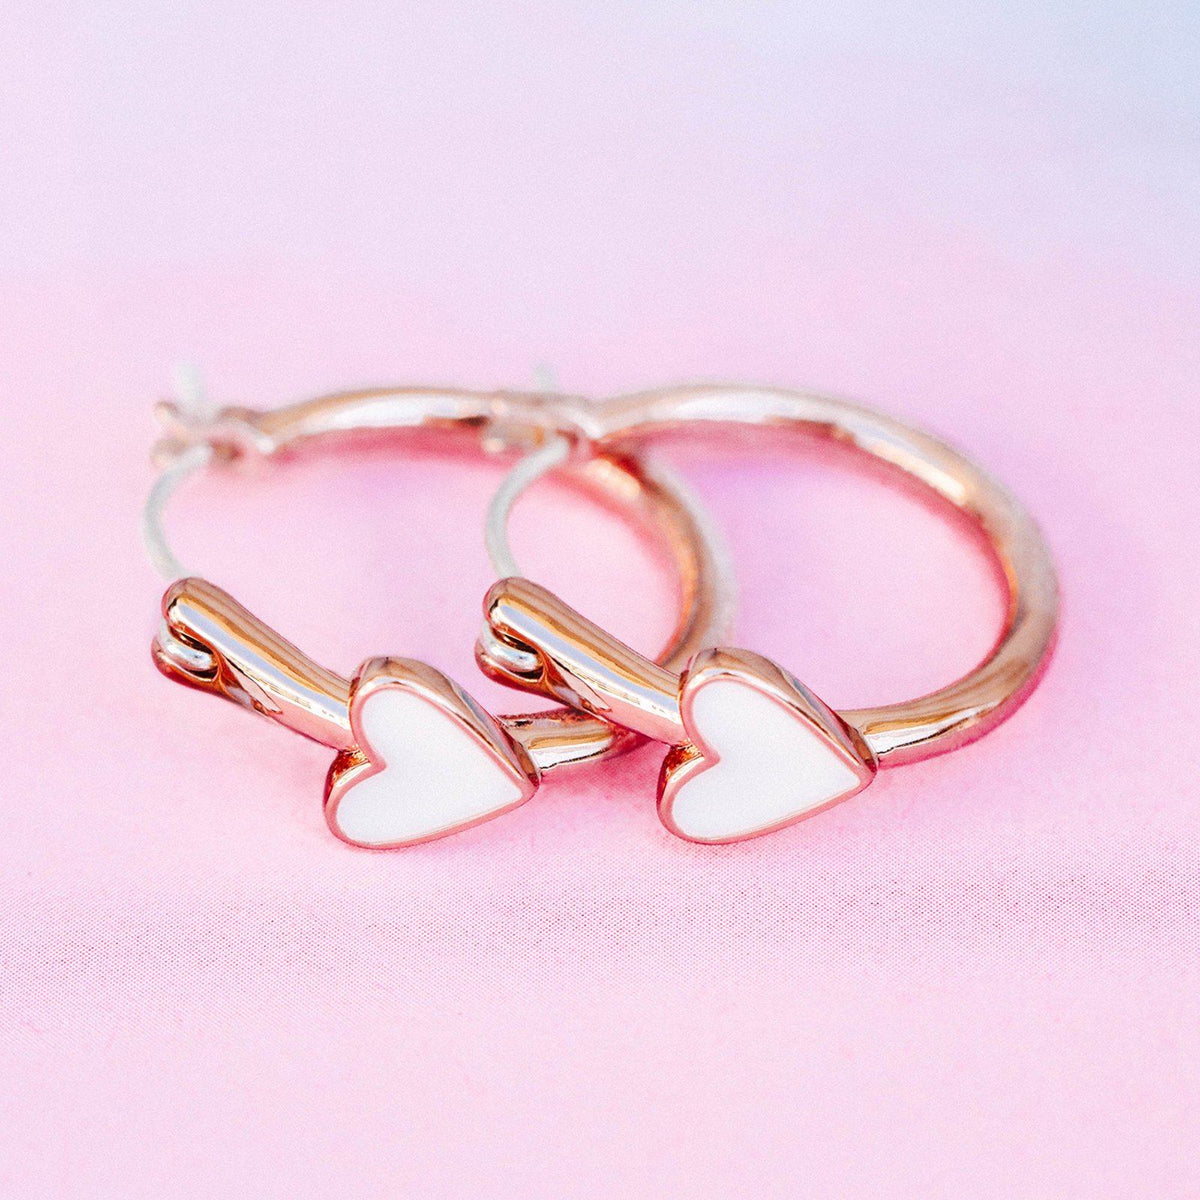 Petite Heart Hoop Earrings 7